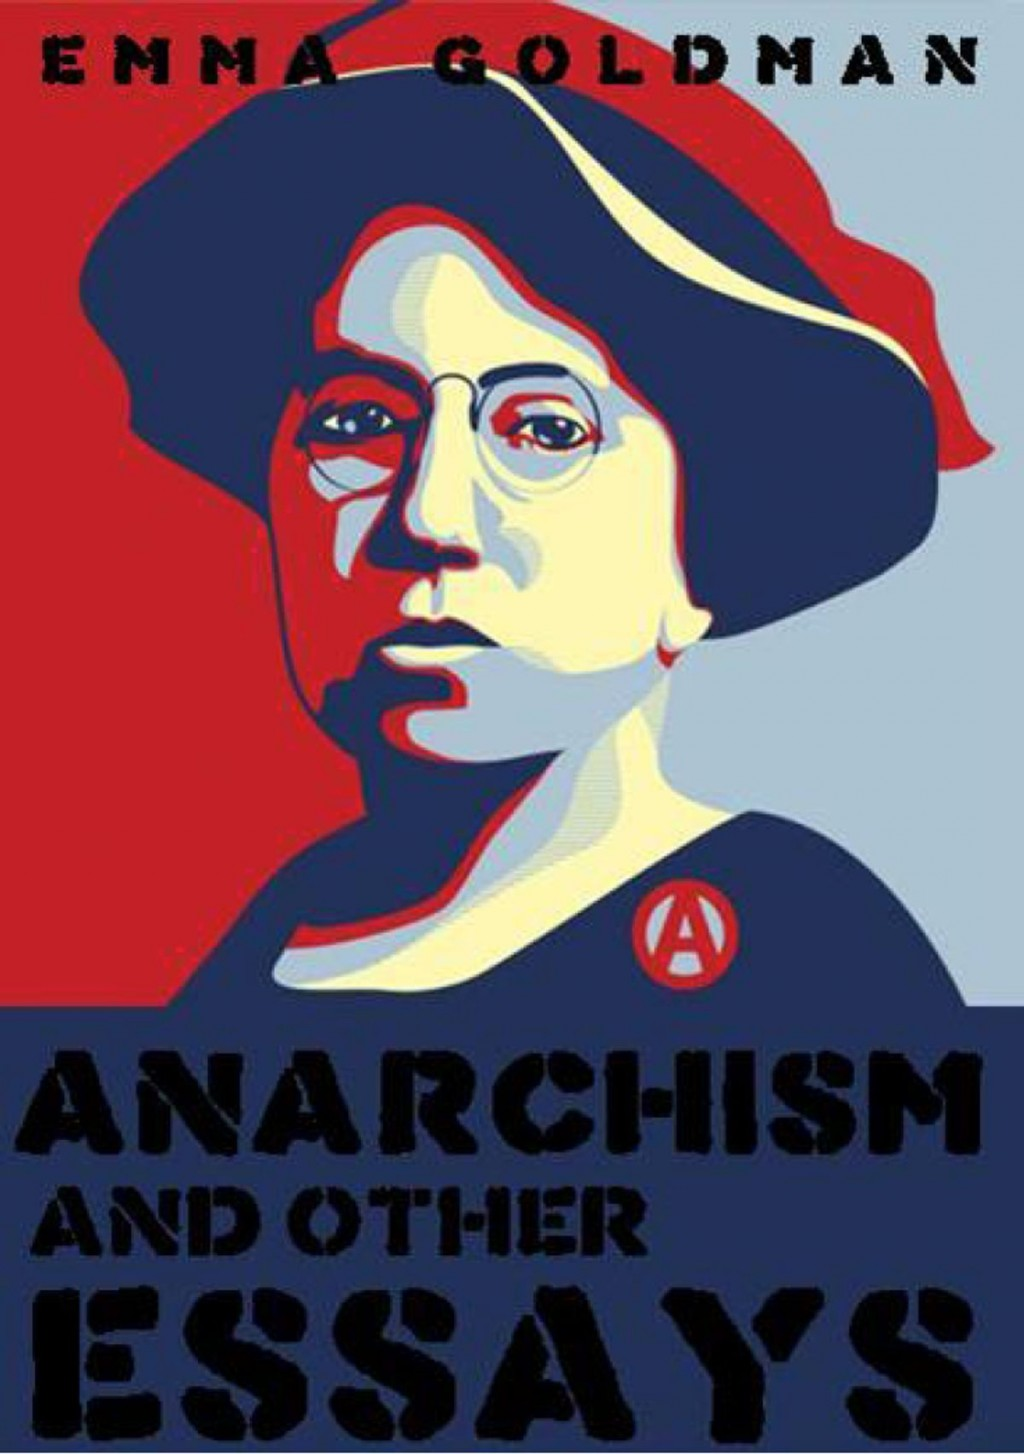 002 Essay Example Anarchism And Other Essays Incredible Emma Goldman Summary Pdf Large